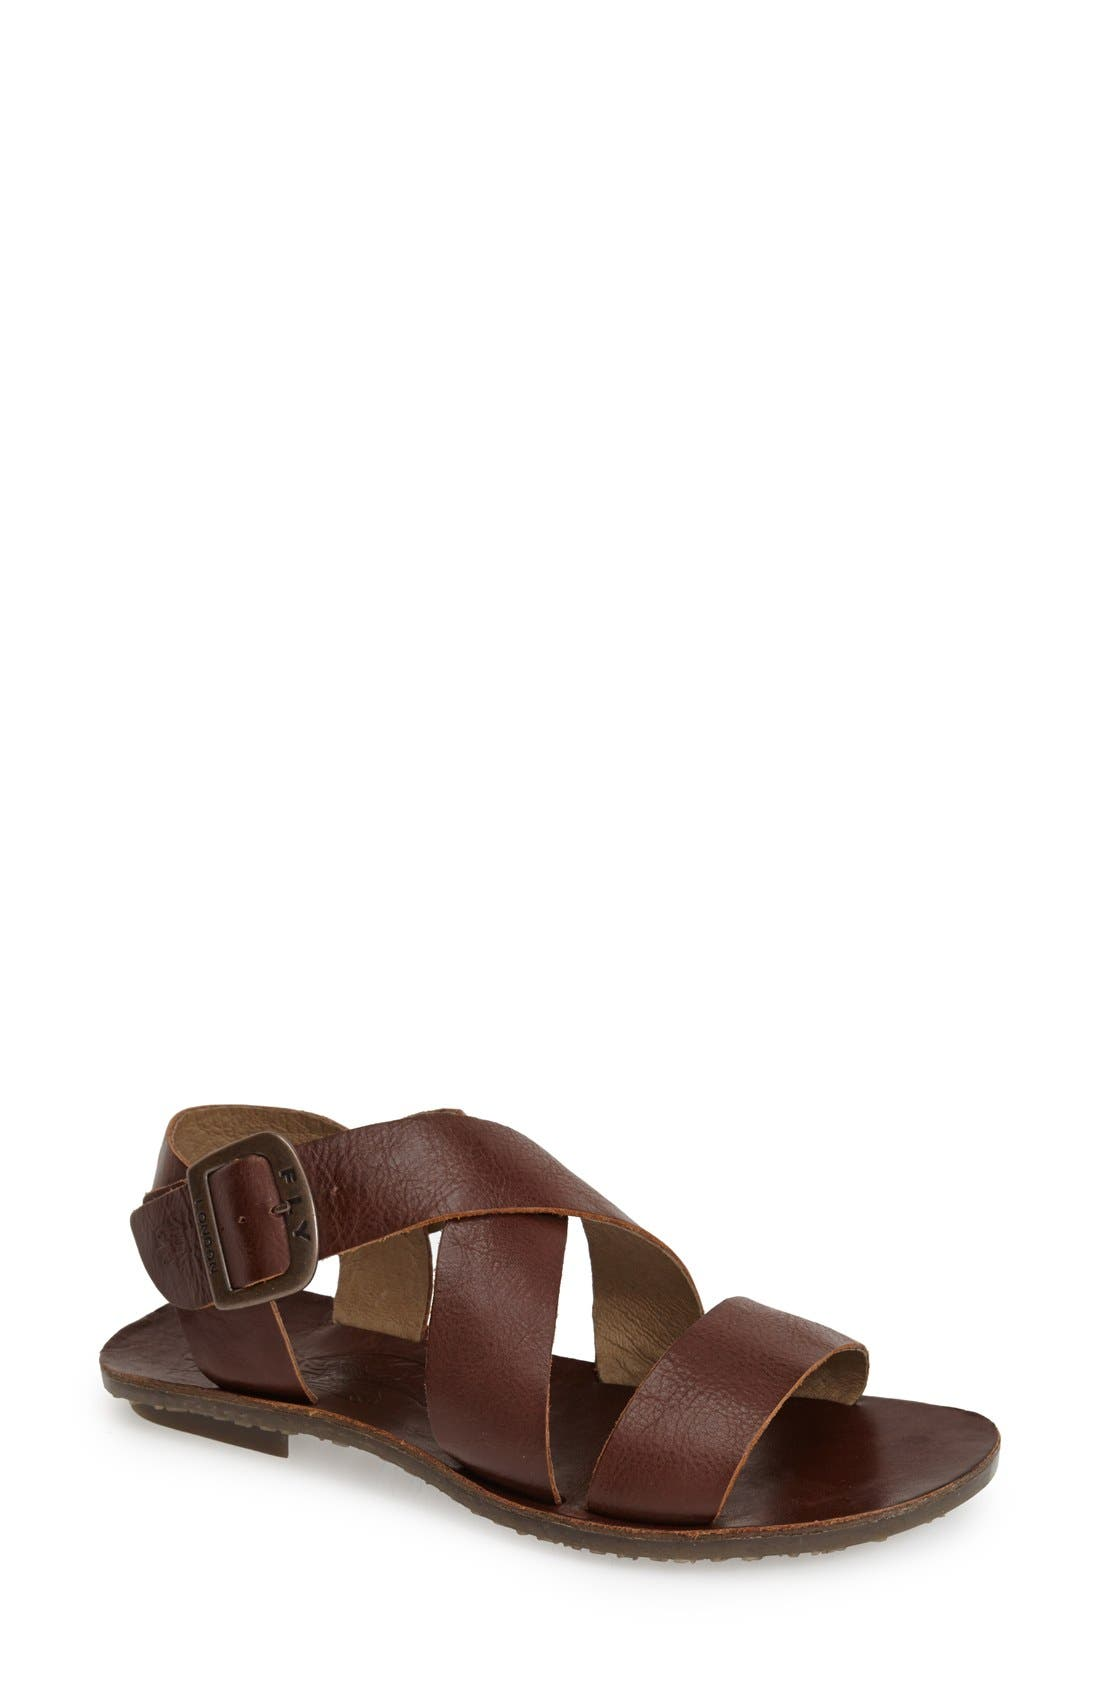 Alternate Image 1 Selected - Fly London 'Bian' Flat Leather Sandal (Women)